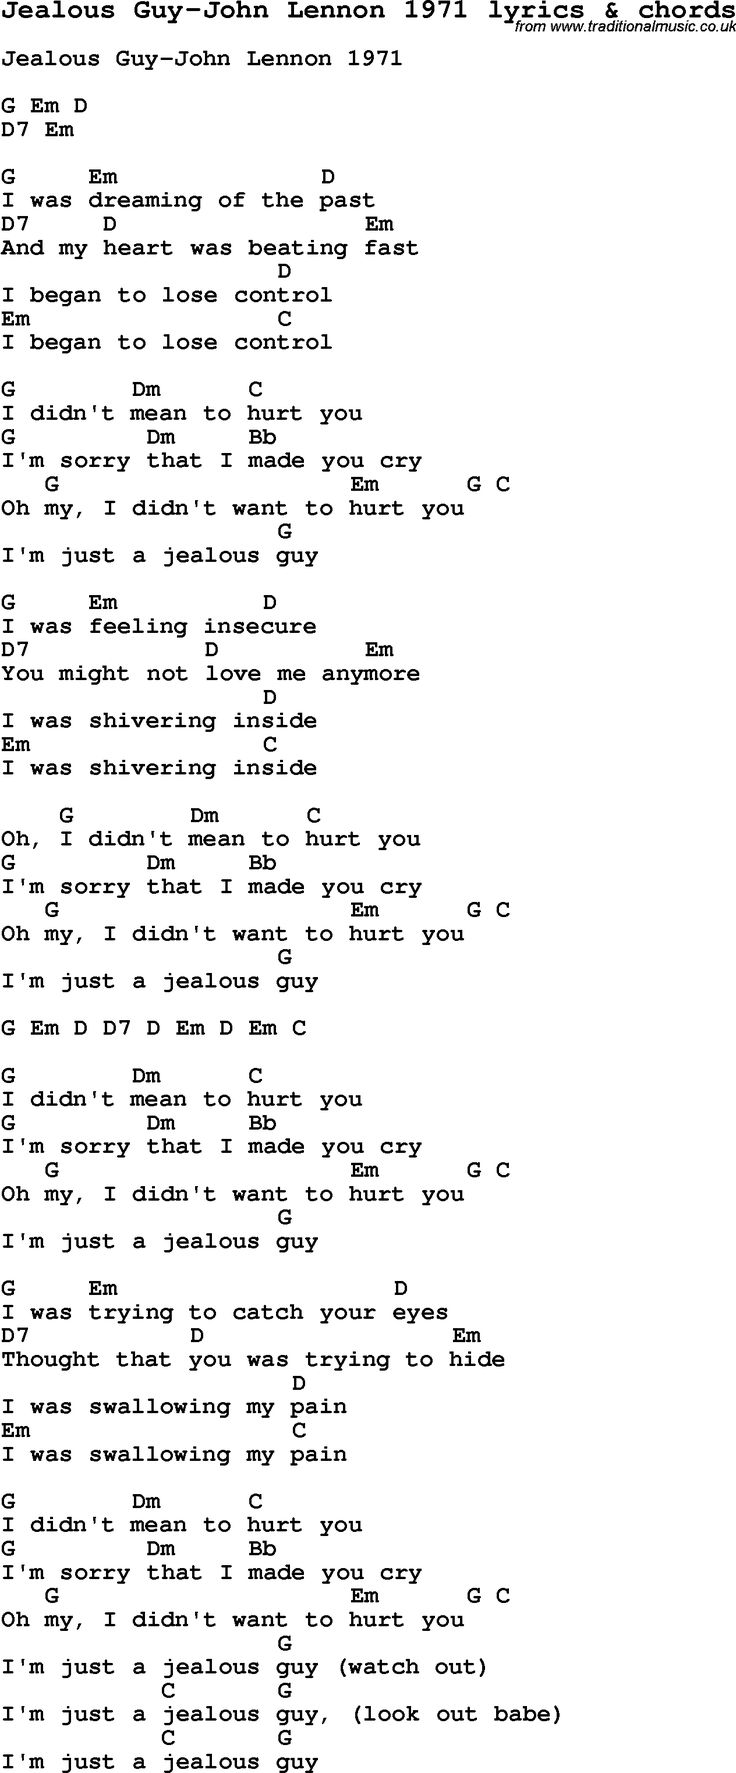 283 best chords guitarpiano images on pinterest guitars love song lyrics for jealous guy john lennon 1971 with chords for ukulele hexwebz Image collections